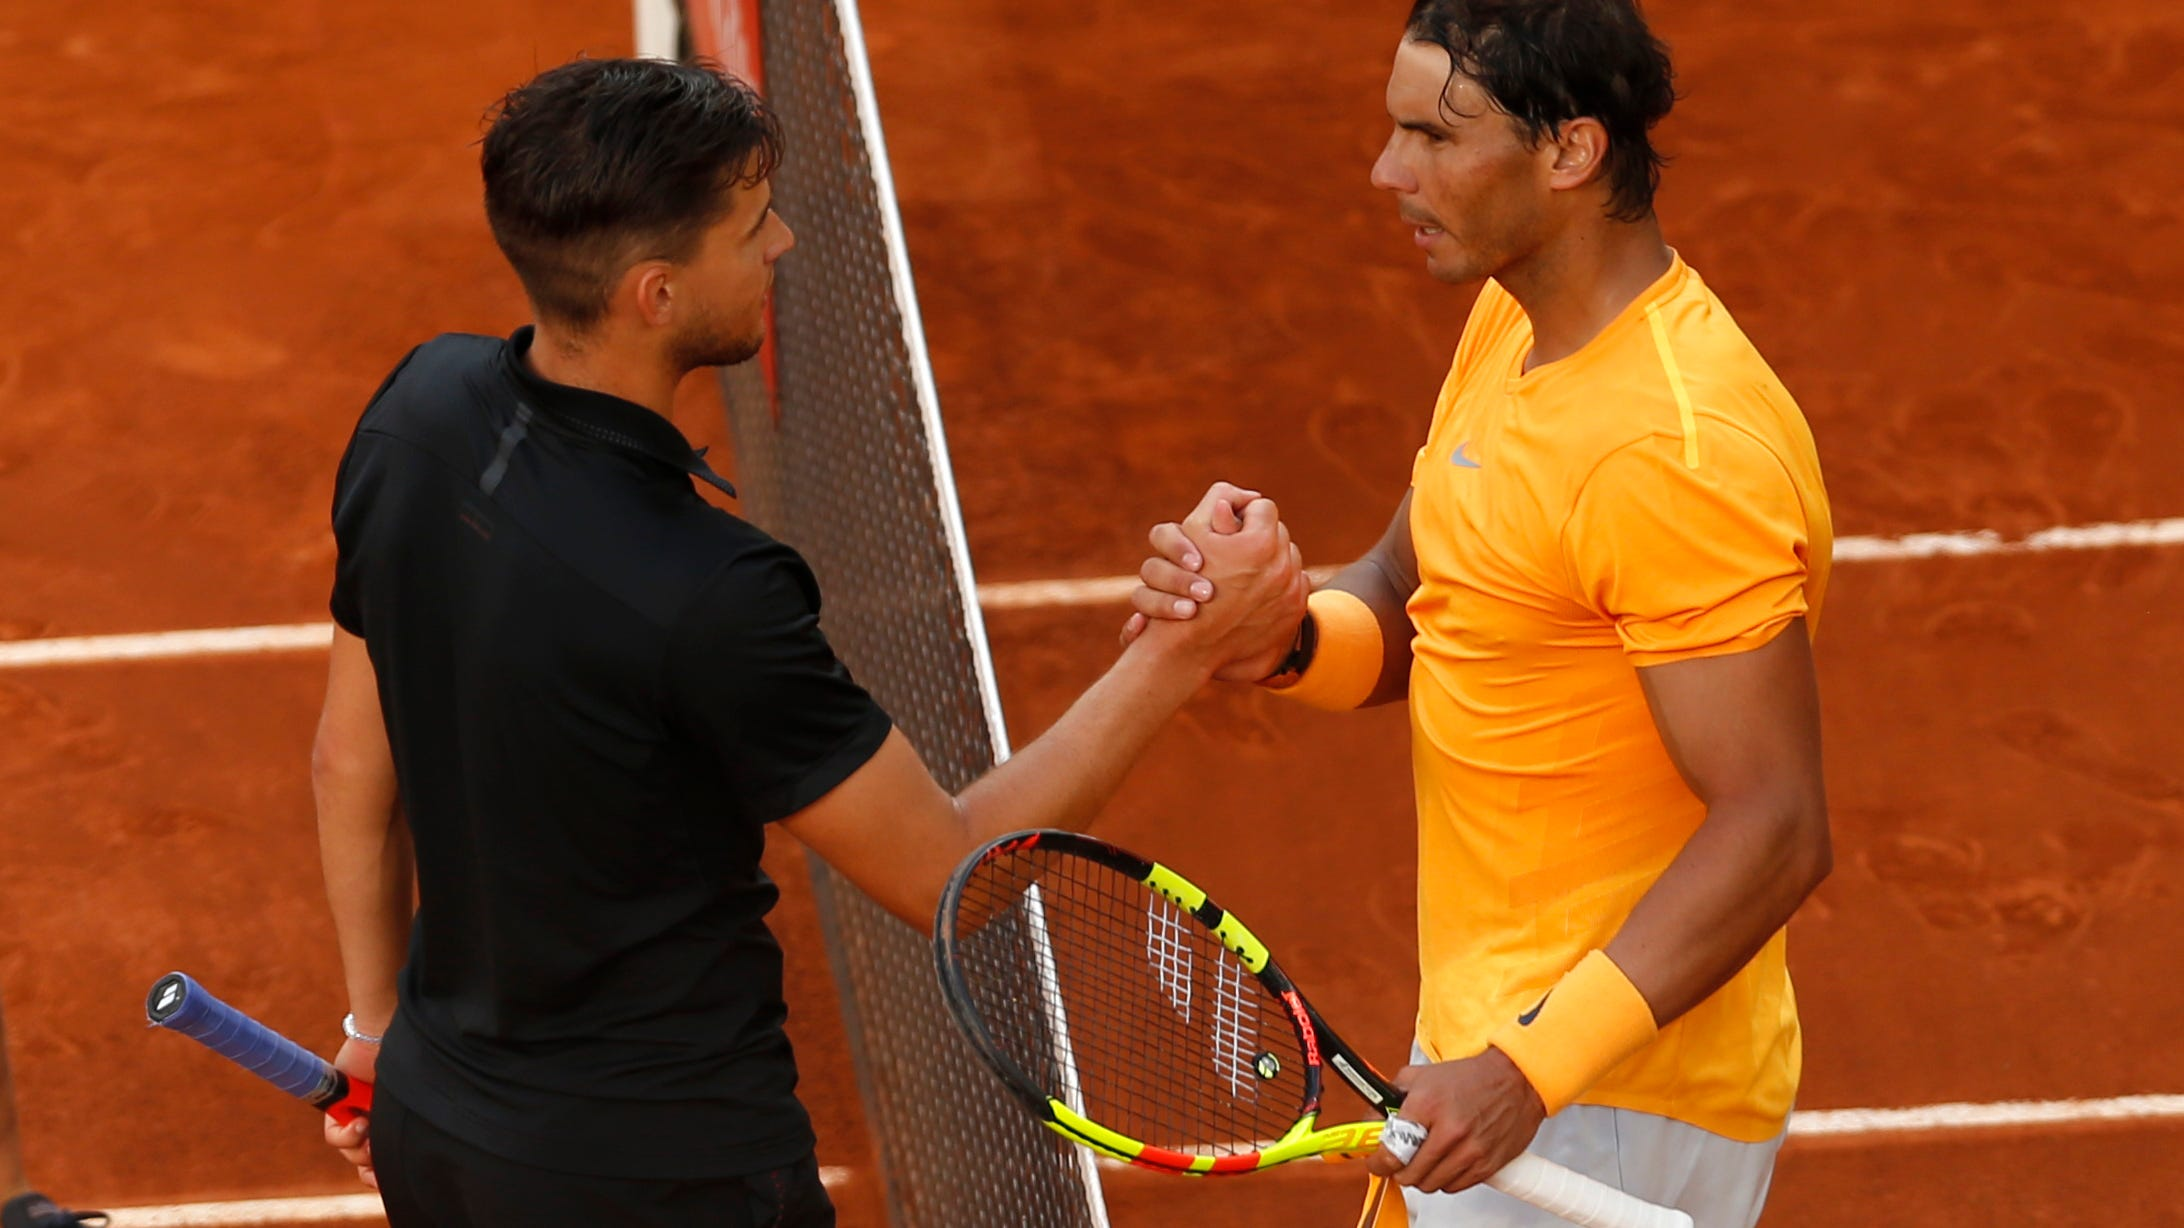 Rafael Nadal Loses To Dominic Thiem In Madrid First Loss On Clay In A Year